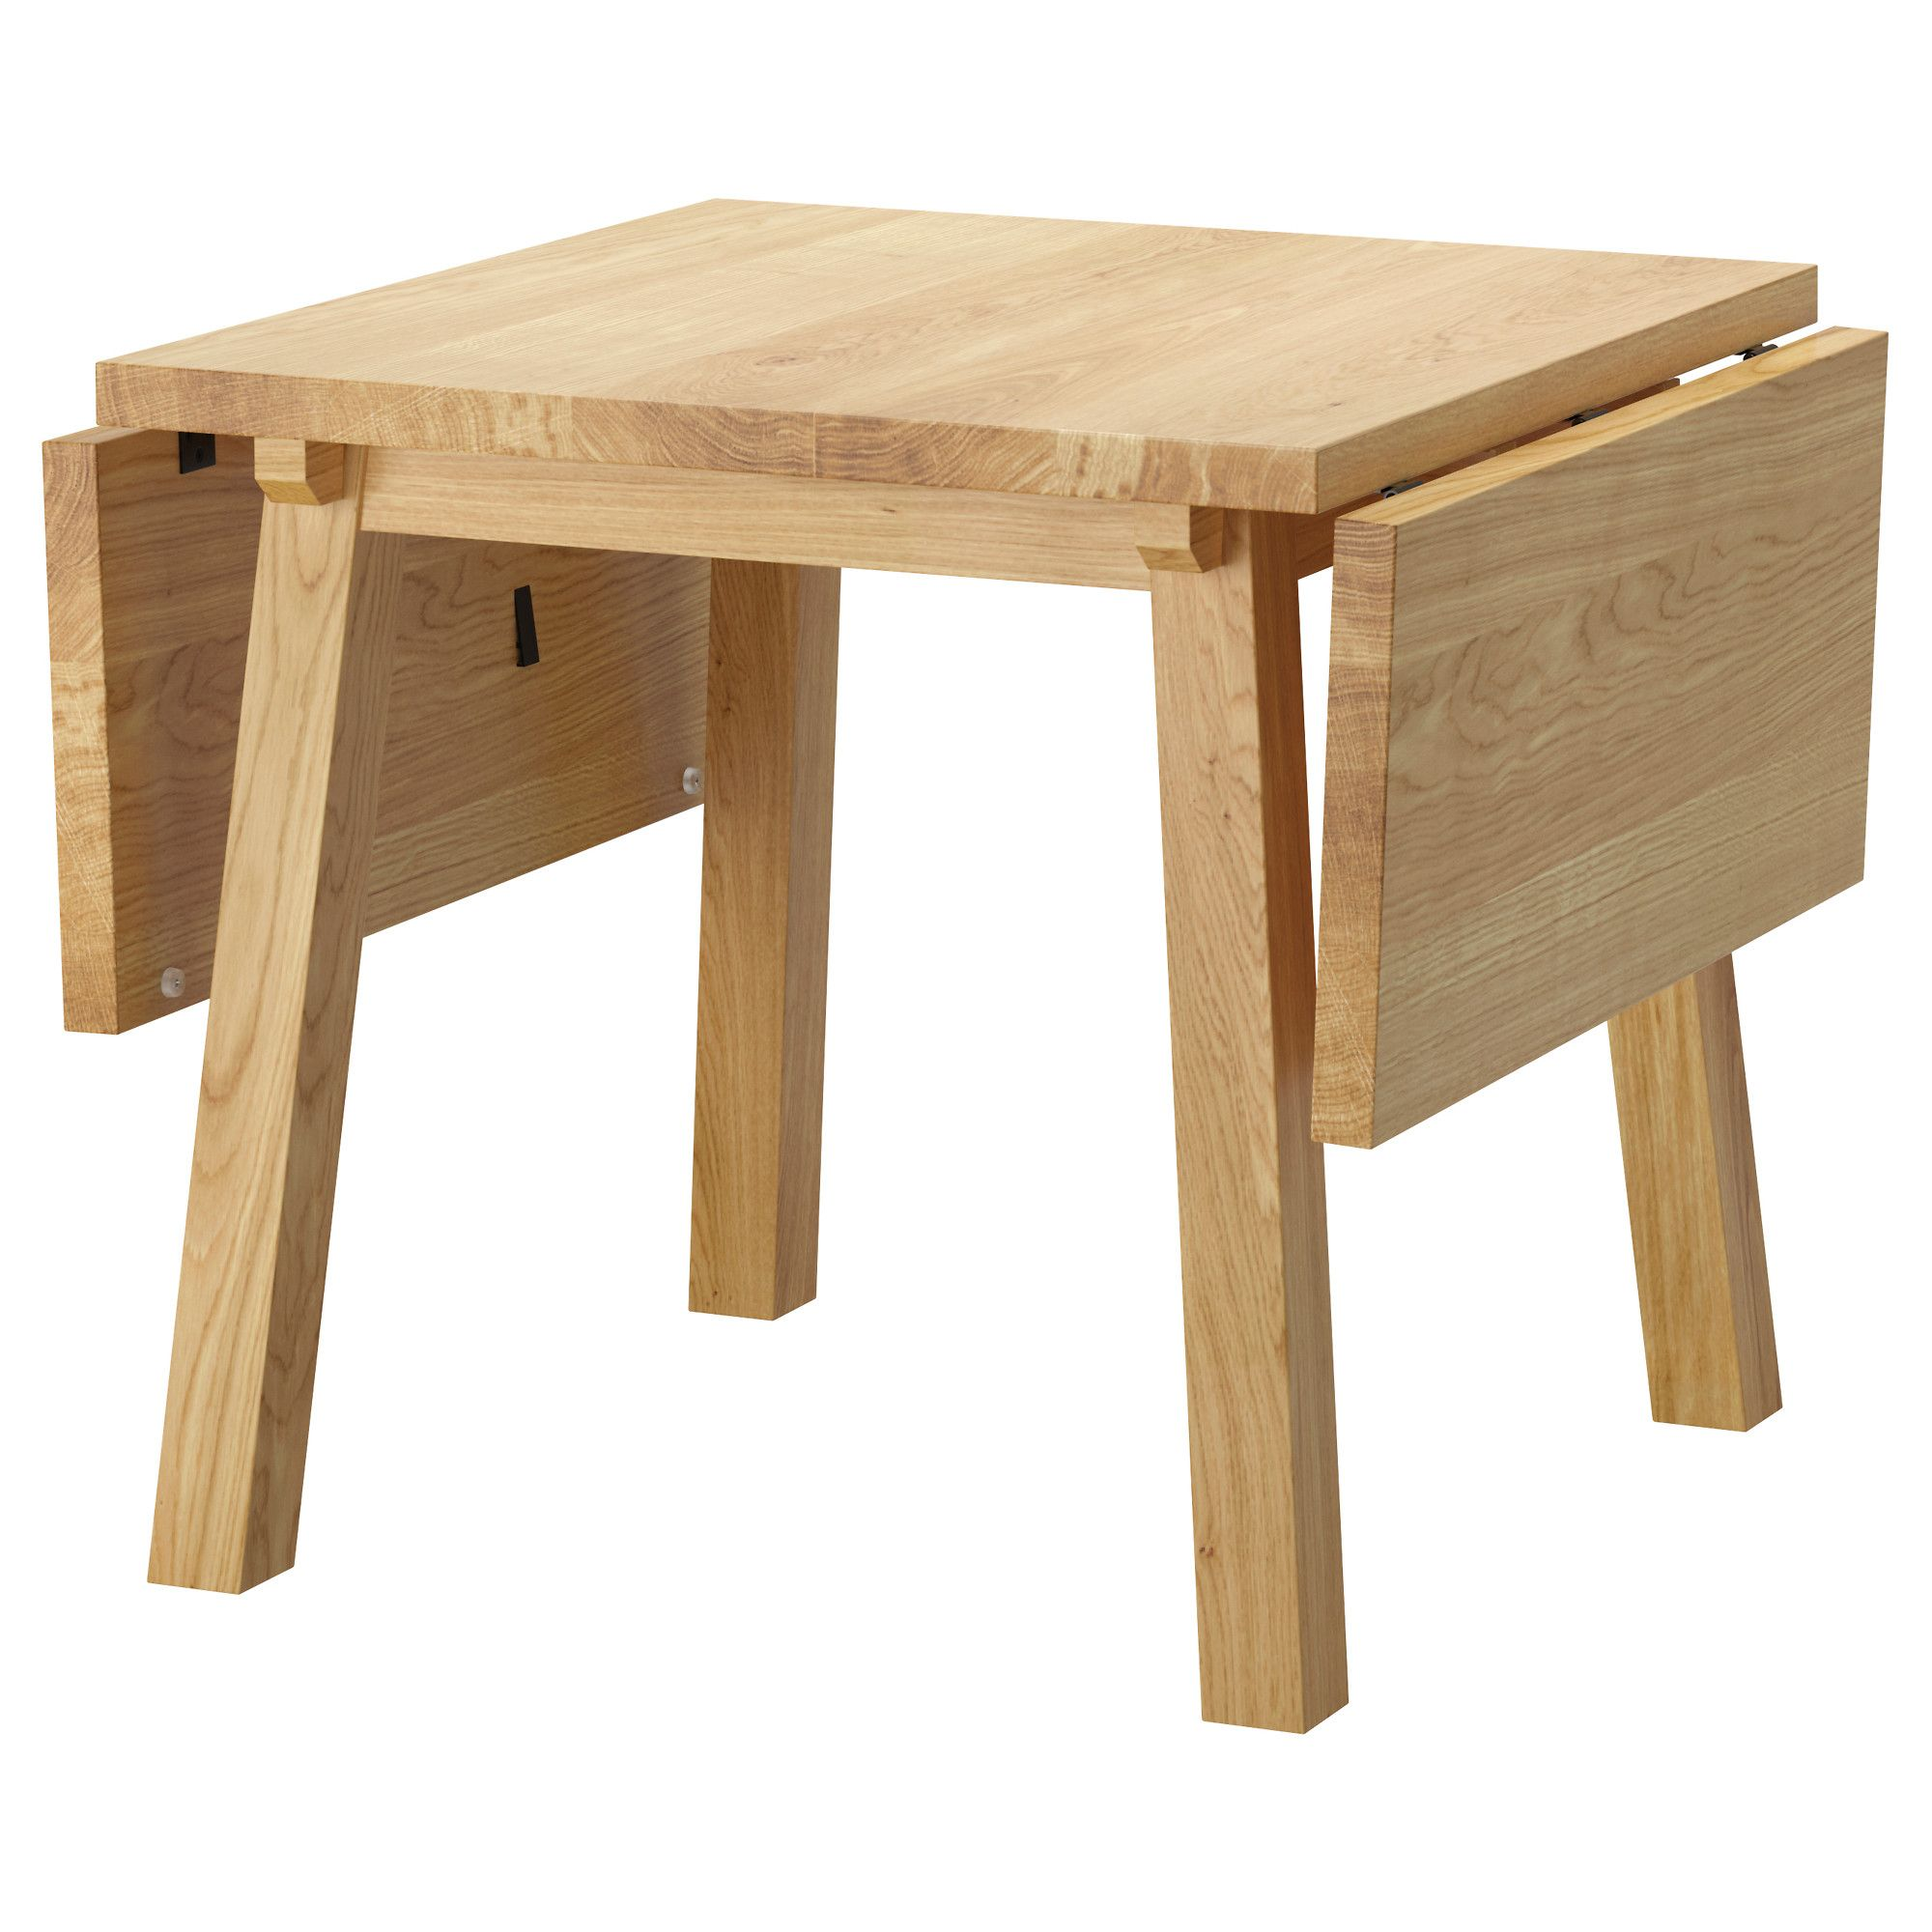 Ikea Us Furniture And Home Furnishings Drop Leaf Table Ikea Drop Leaf Table Ikea Dining Room